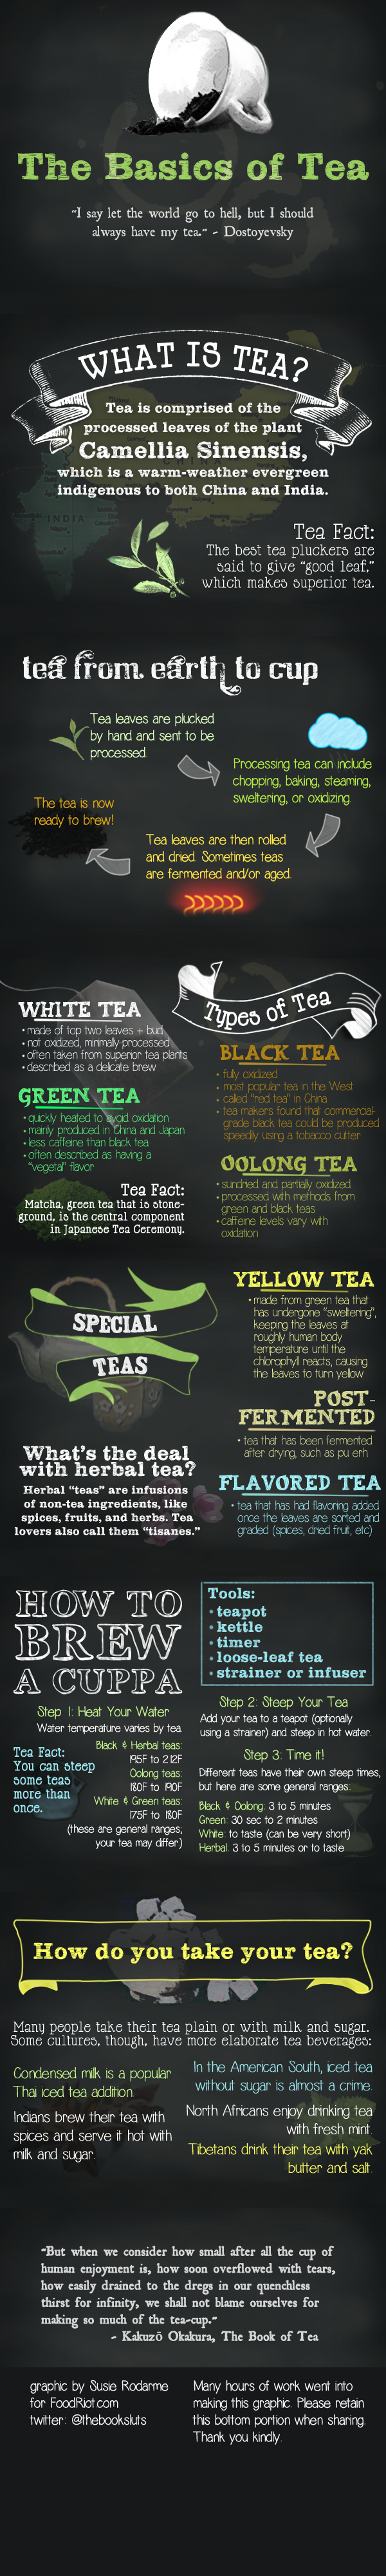 Tea infographic, courtesy of Foodriot.com